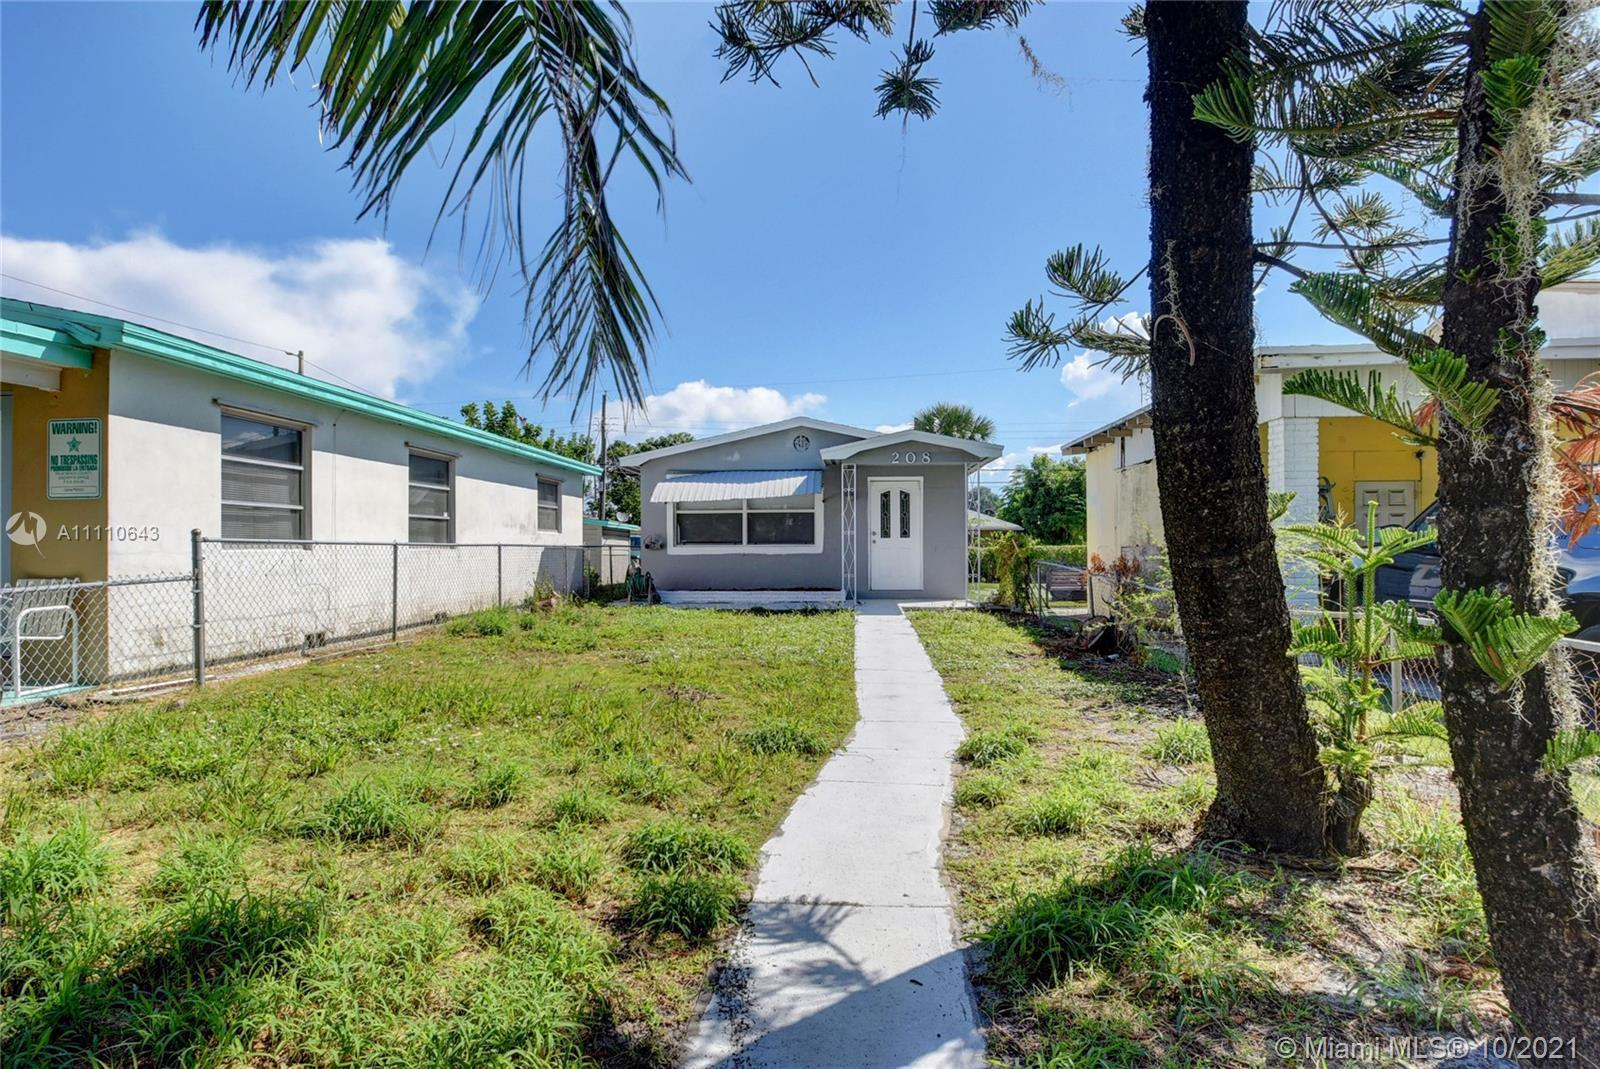 Beautifully remodeled 2 bedrooms 1 bathroom home for sale. Modern eat-in kitchen with quartz counter